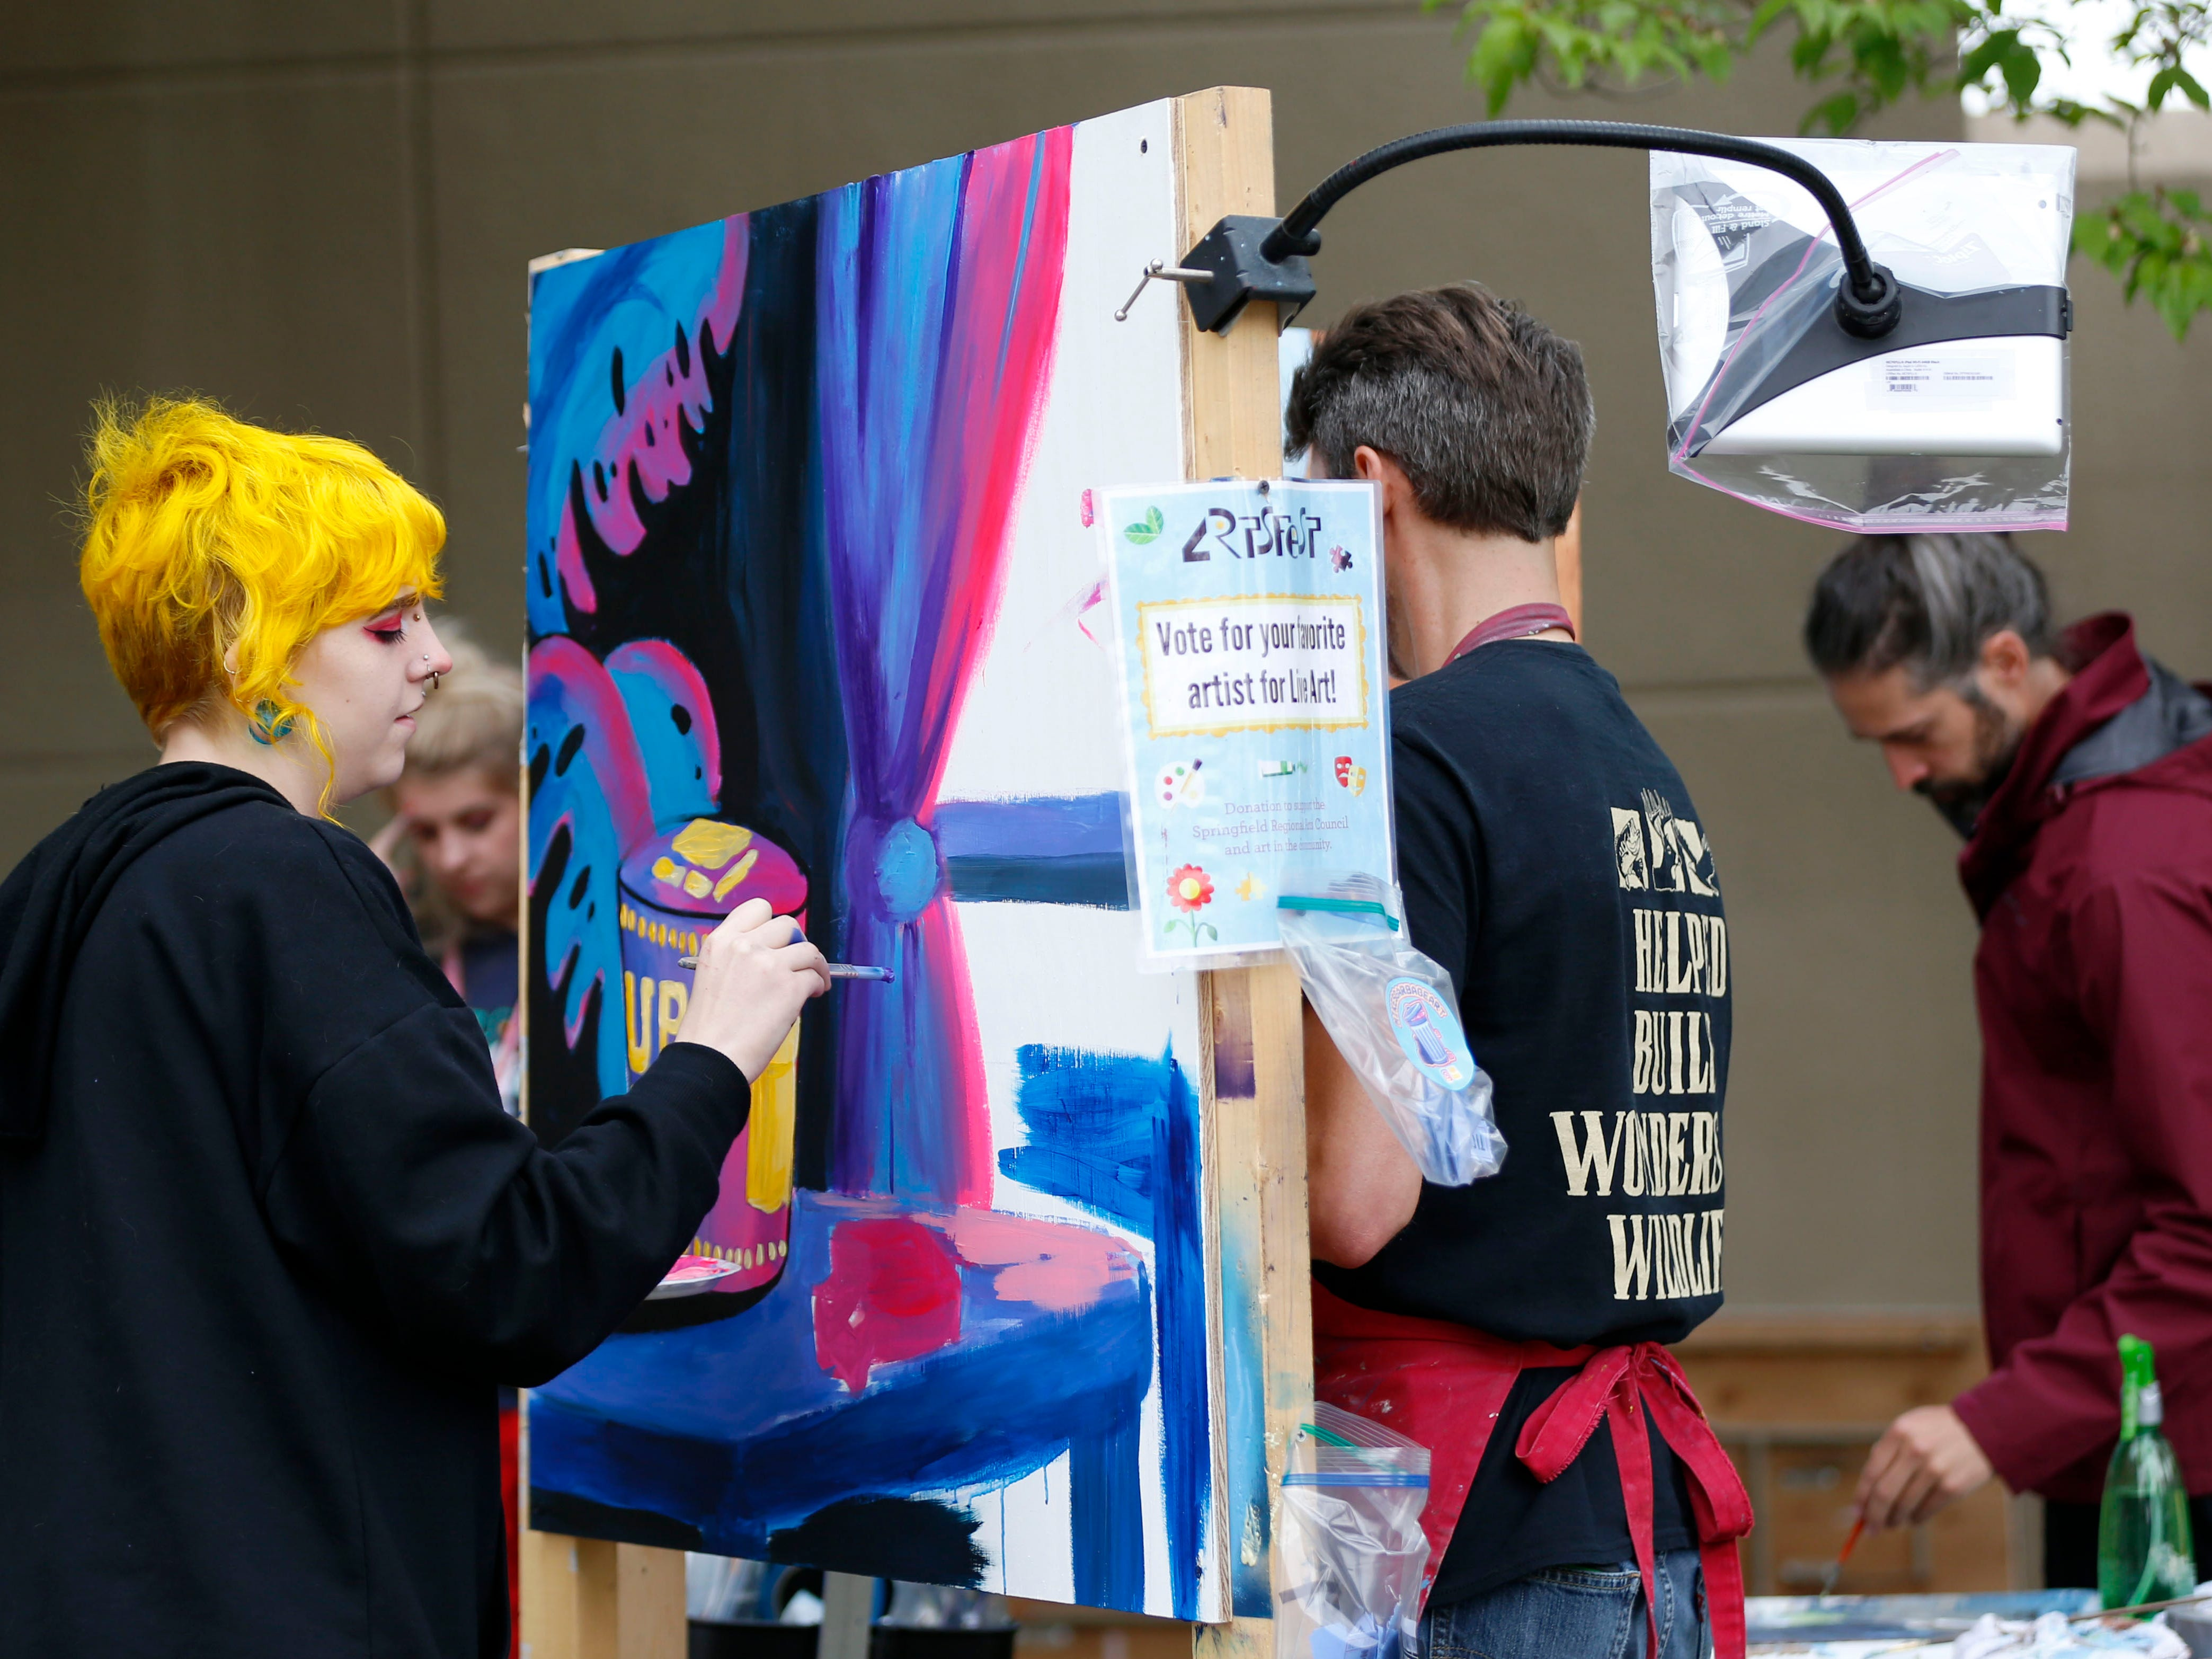 Thousands of people attended Artsfest on Walnut Street on Saturday, May 4, 2019.